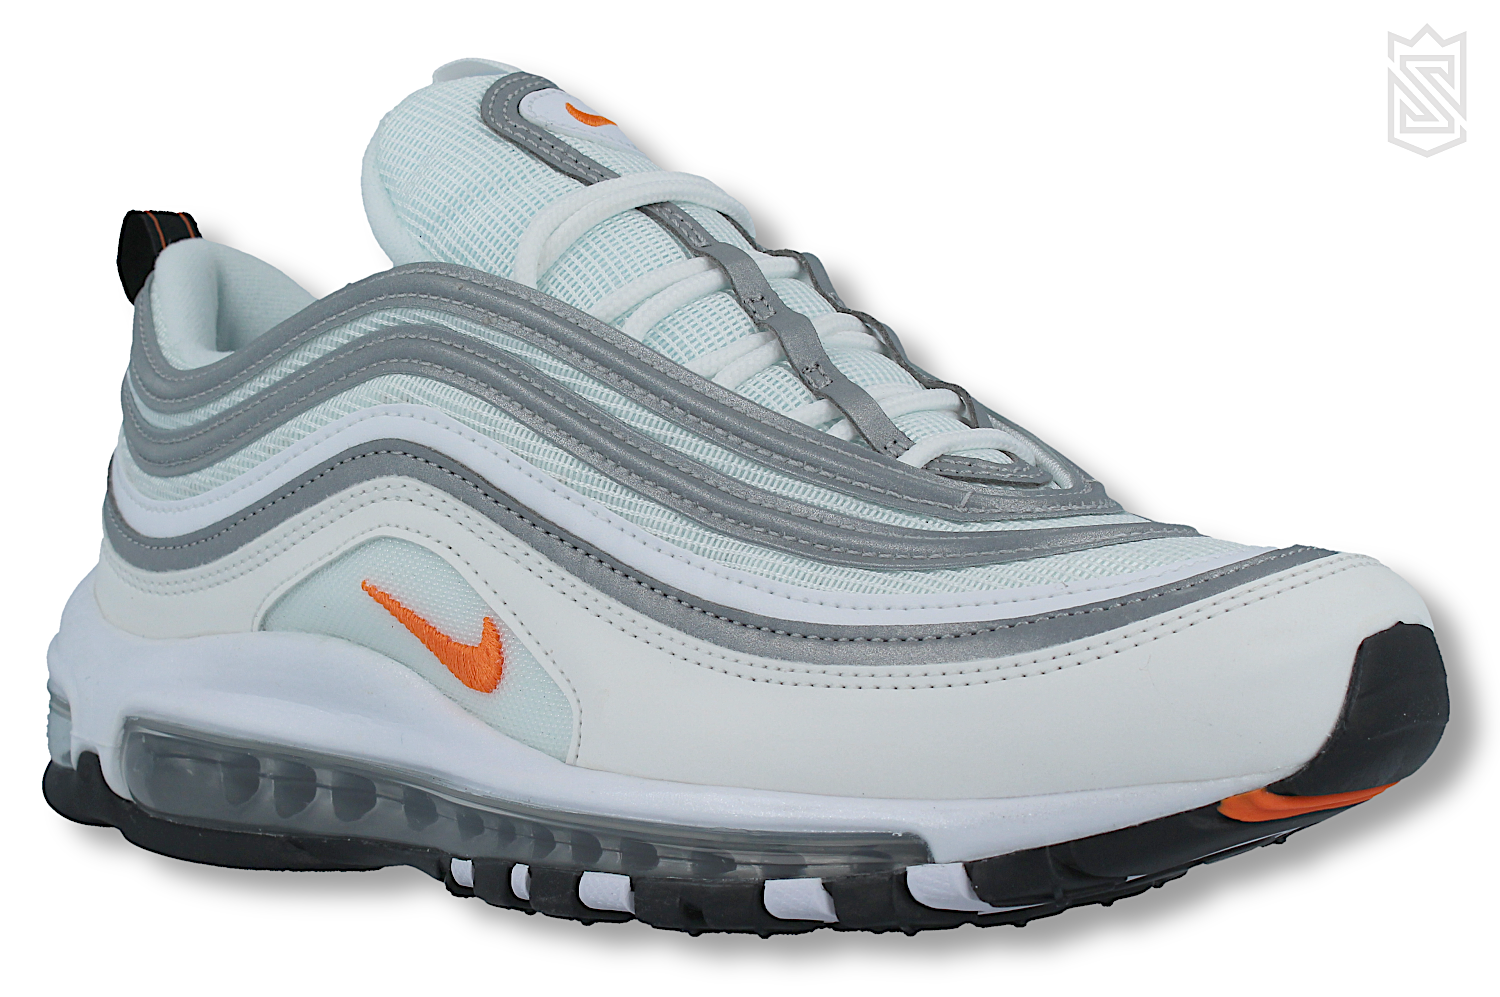 size 40 64694 b1d70 coupon code for air max 97 schrittmacher shop 272b1 afb00